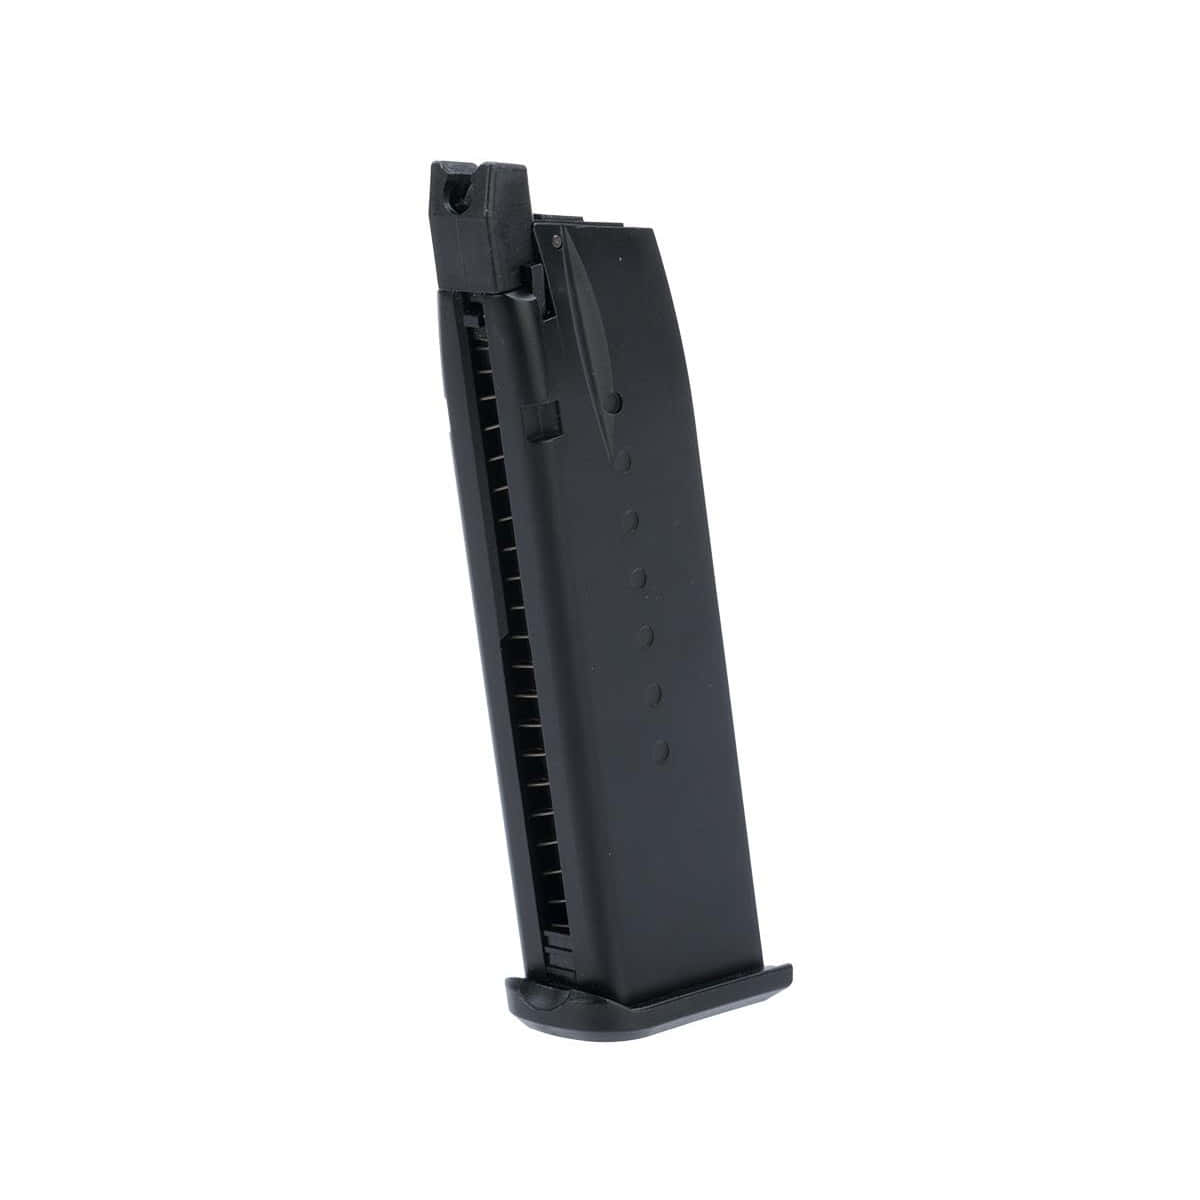 CPG42410 Hudson H9 GBB gas mag 25 rounds - CPG42410